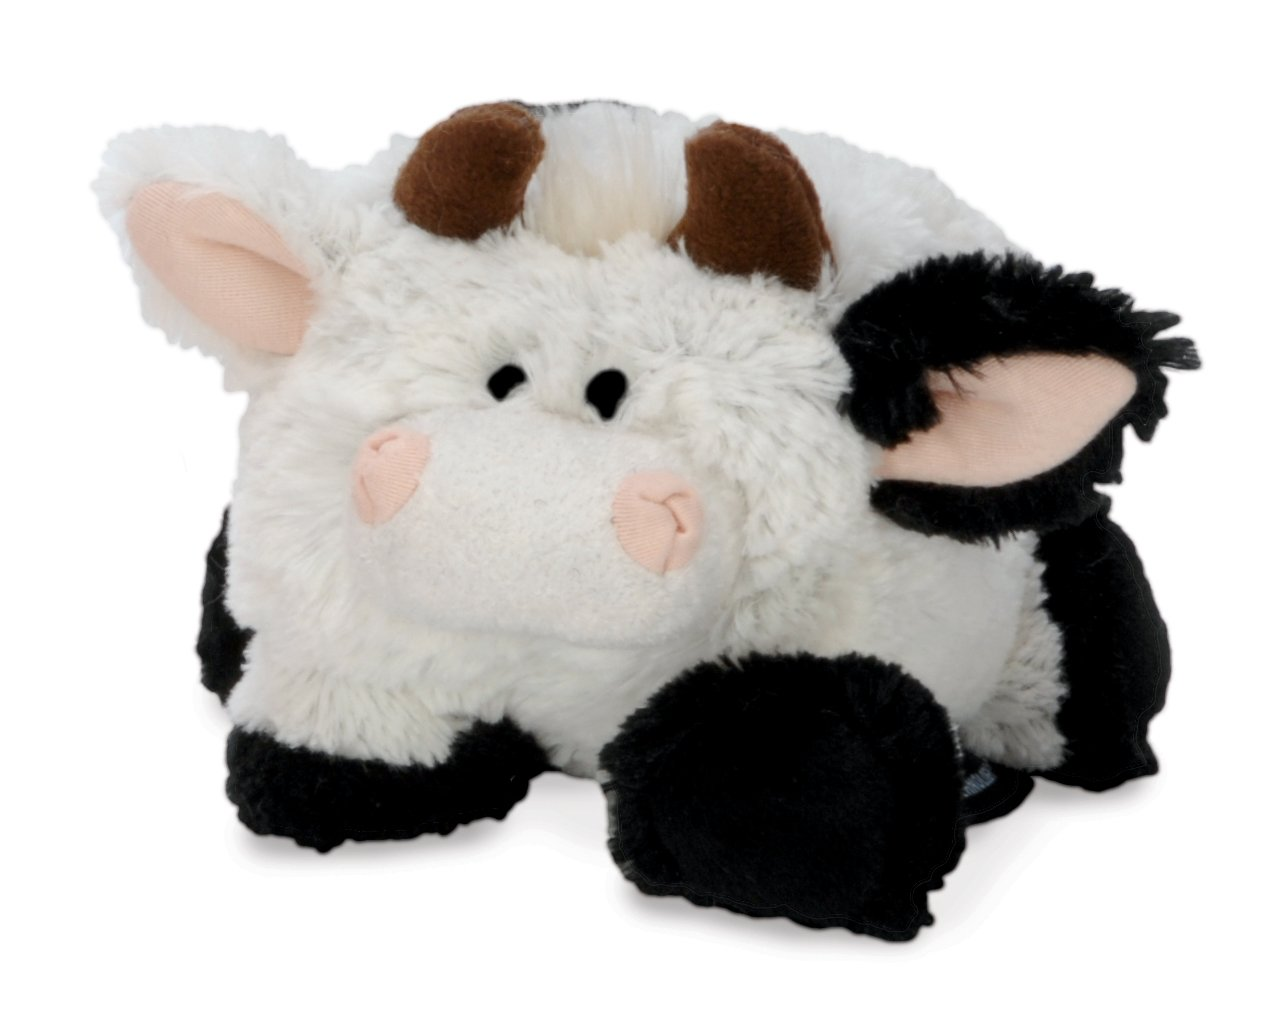 goDog Puppy Tough Ball Cow Style Dog Toy with Chew Guard